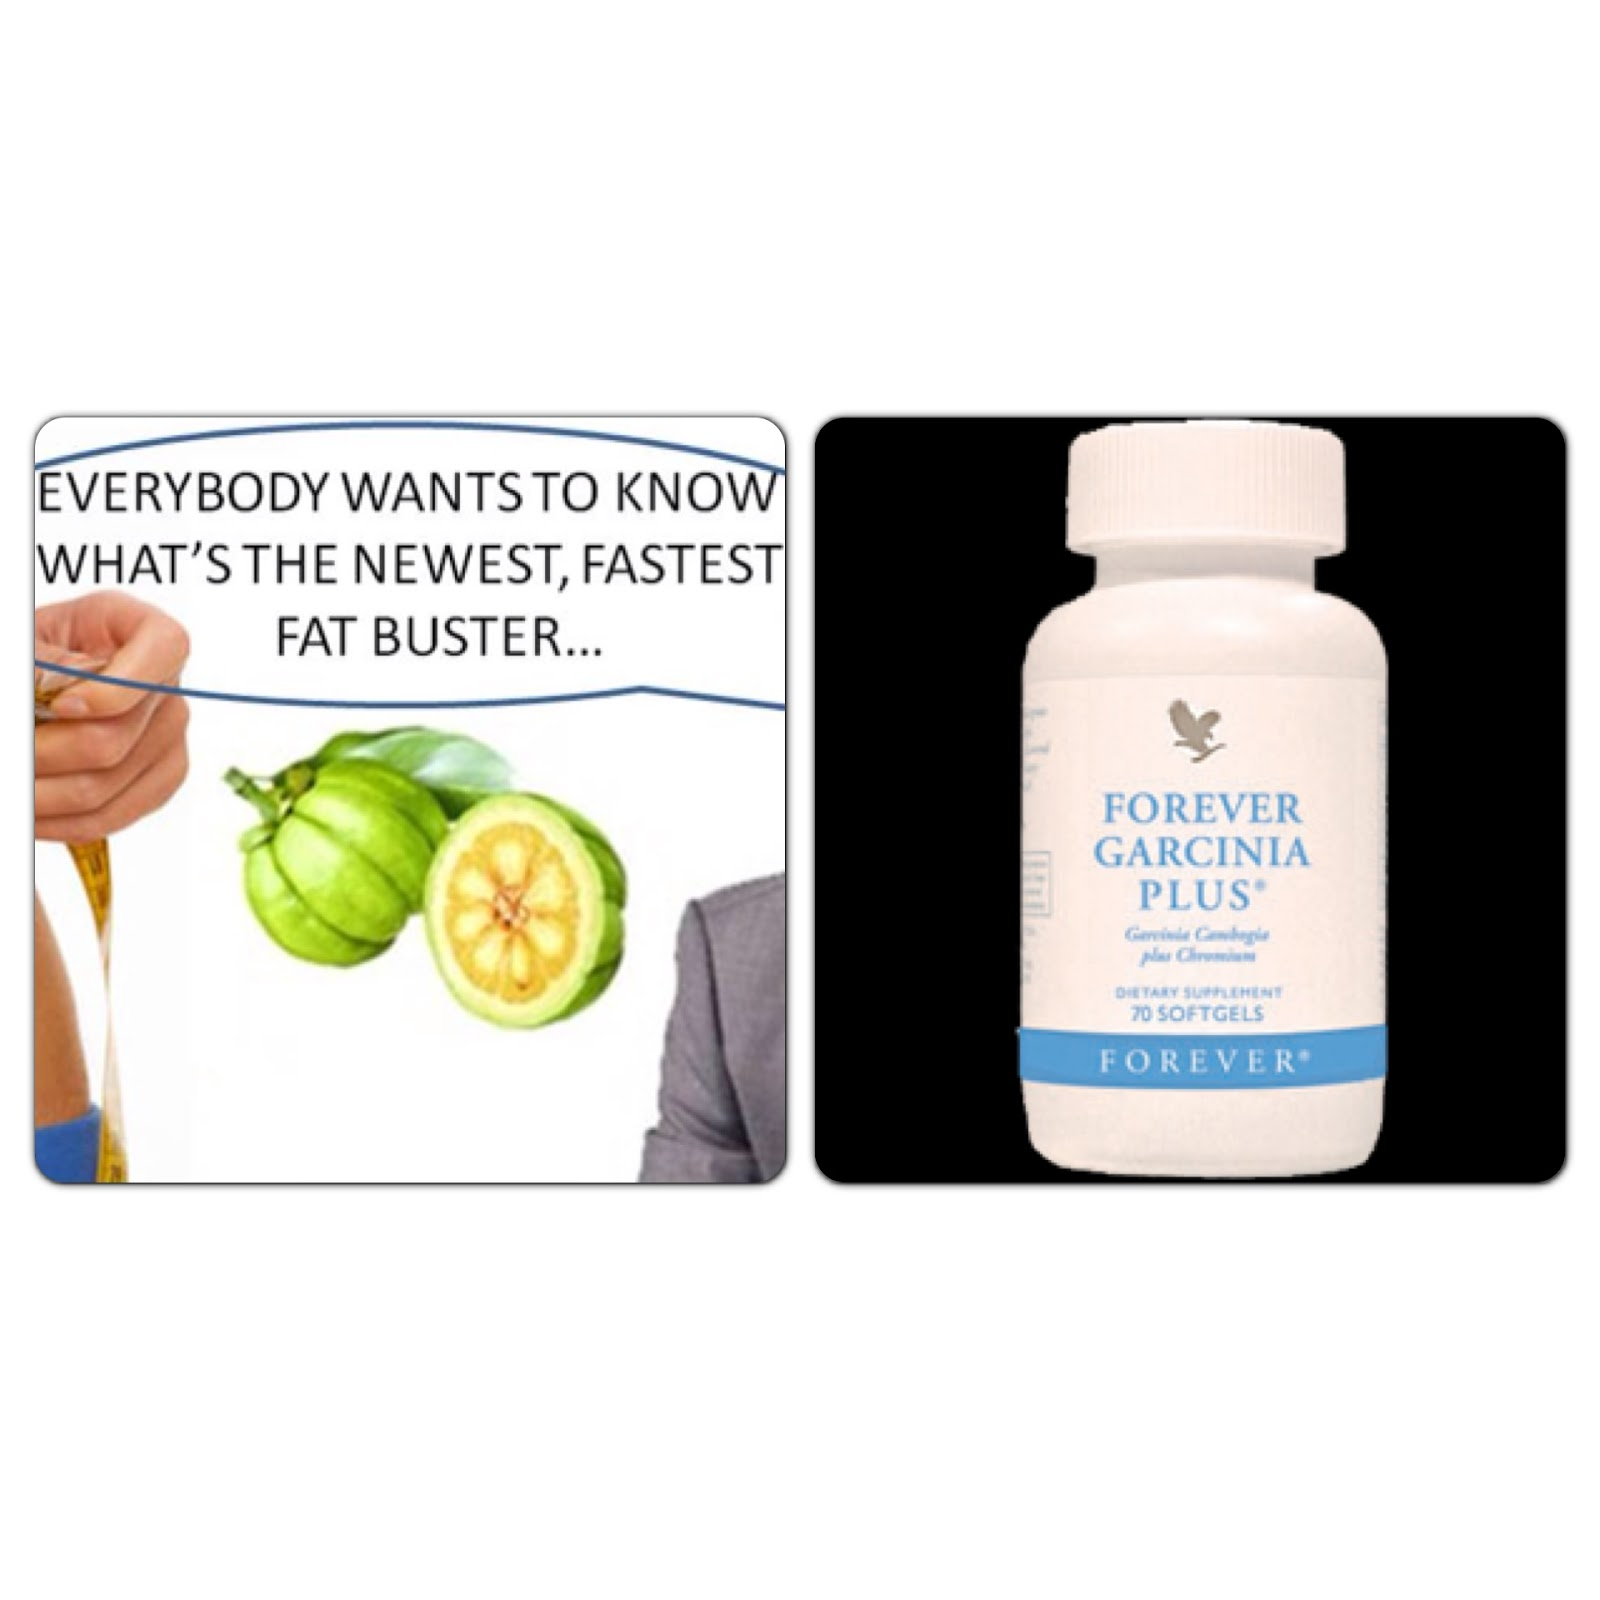 garcinia-cambogia-newest-fastest-fat-buster-pt-3